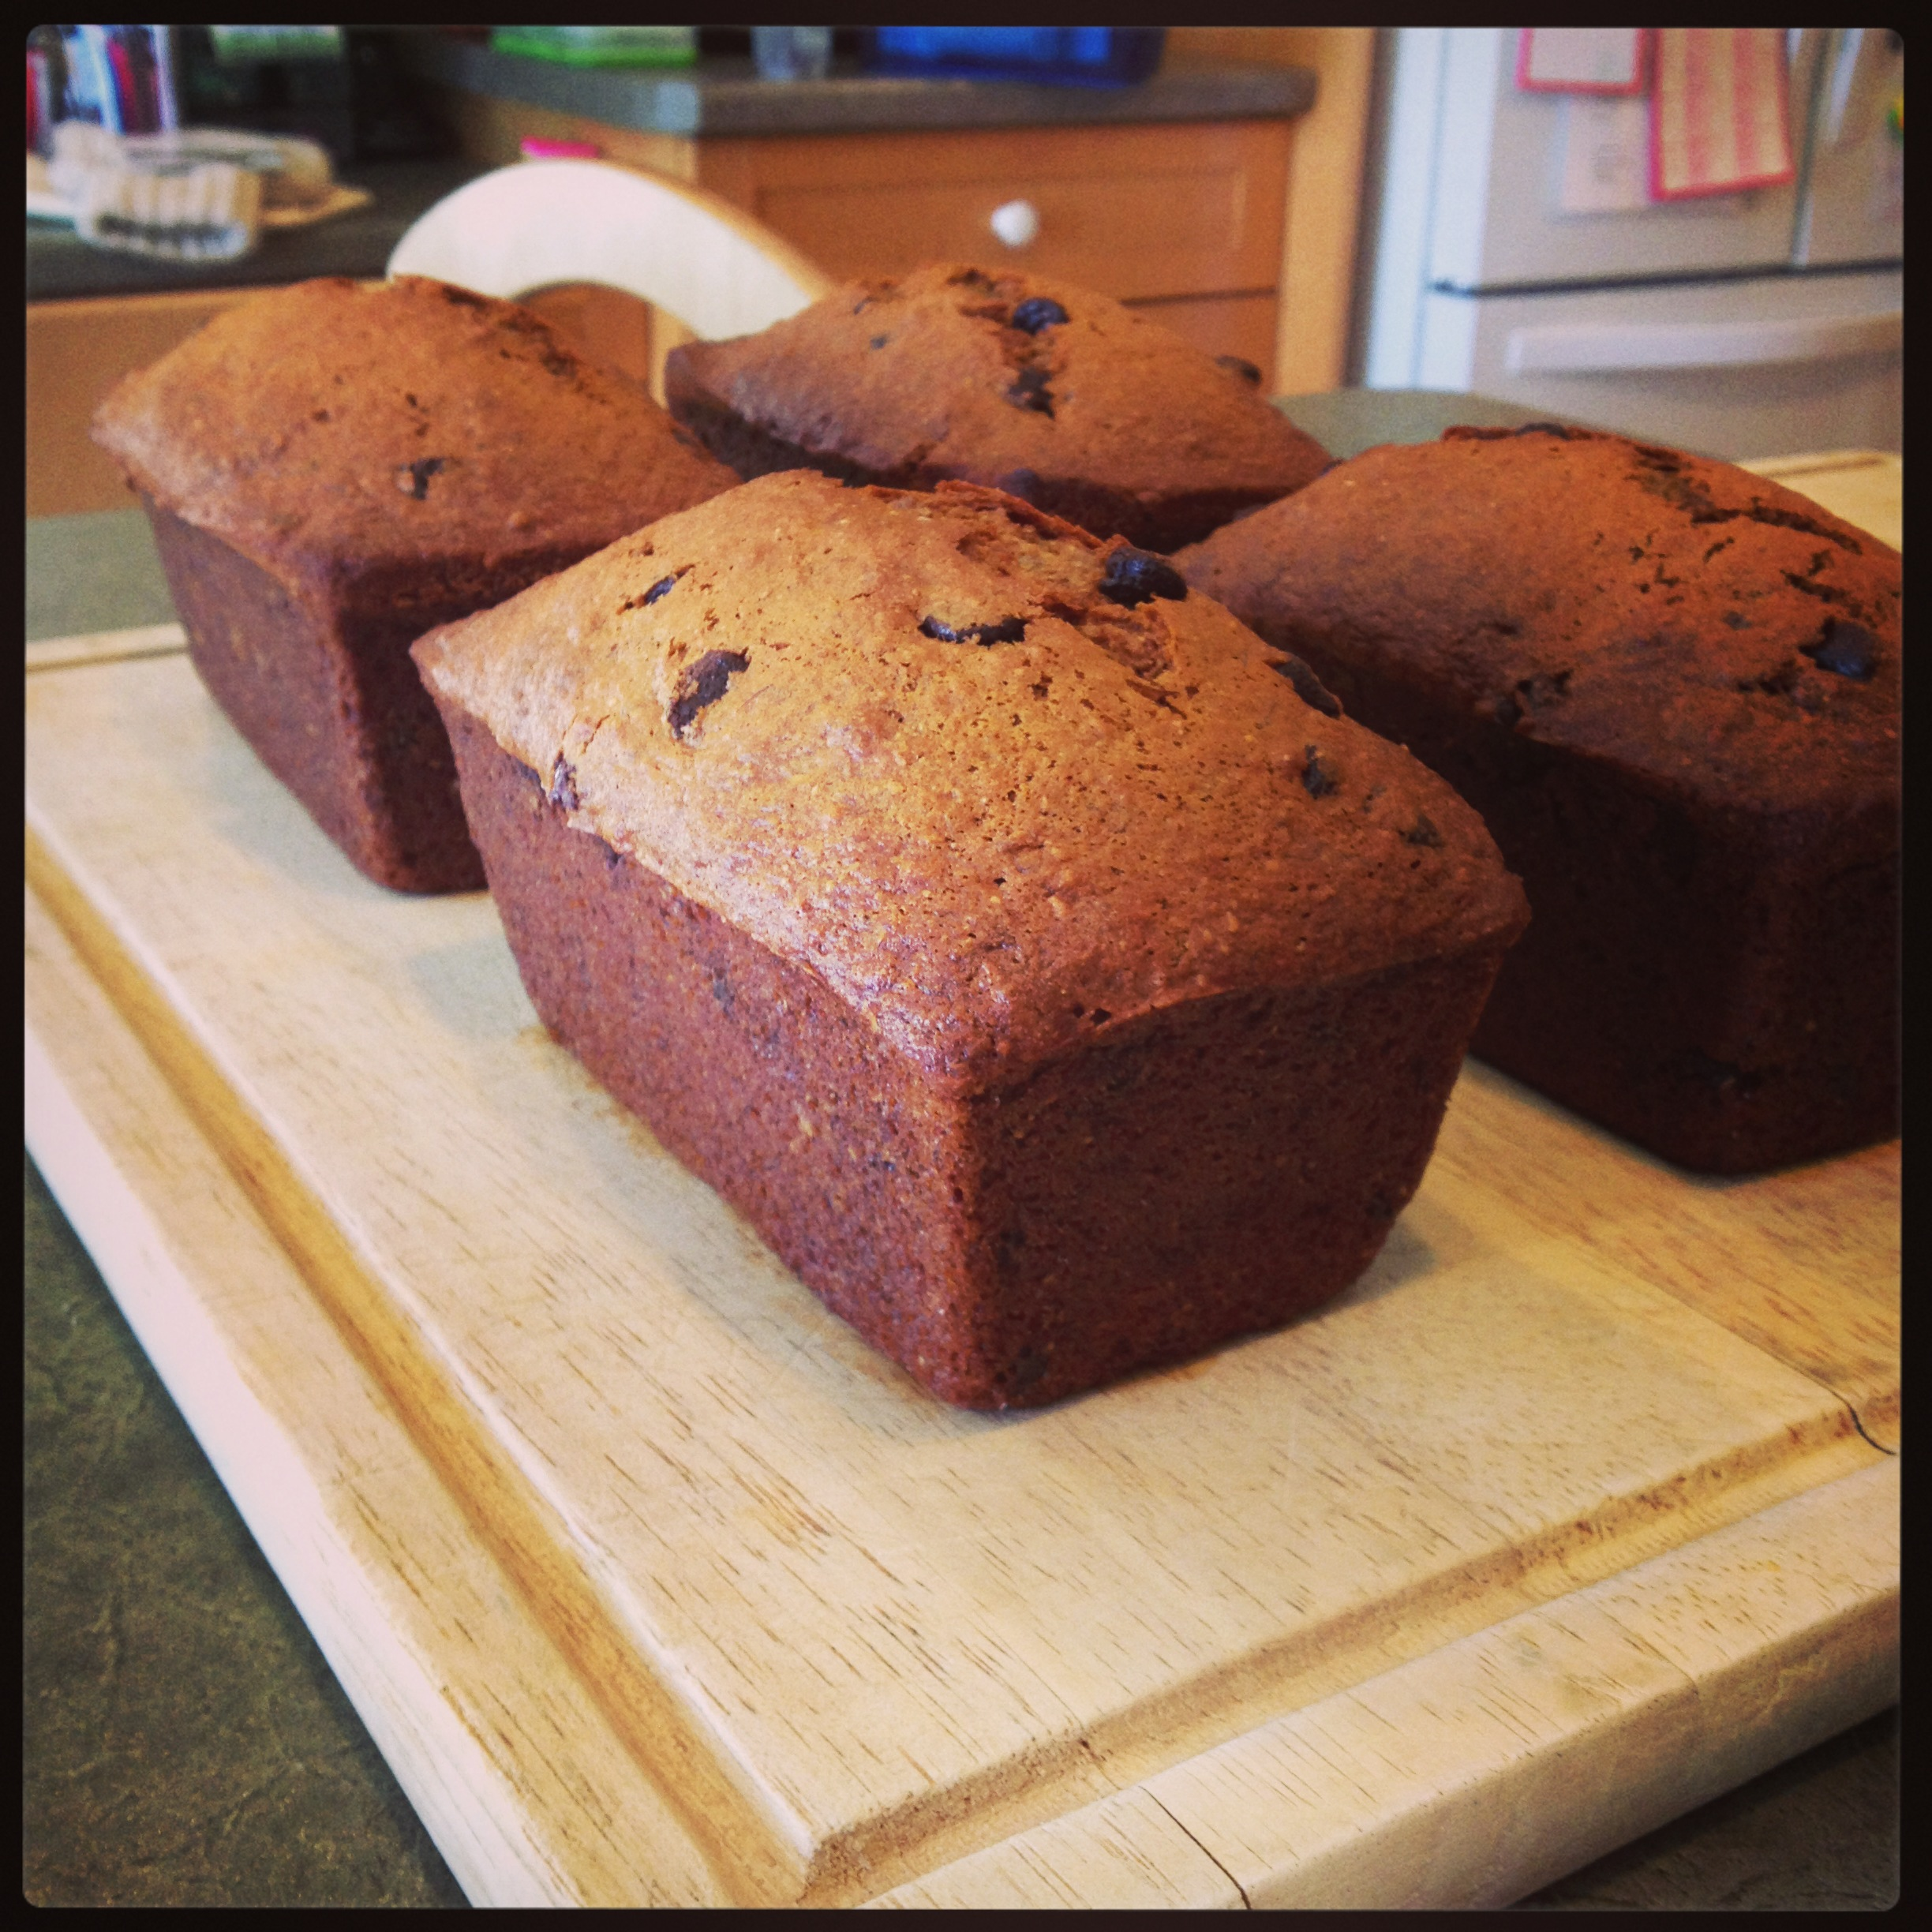 What a week this has been {and a recipe for Chocolate Chip Banana Loaves}